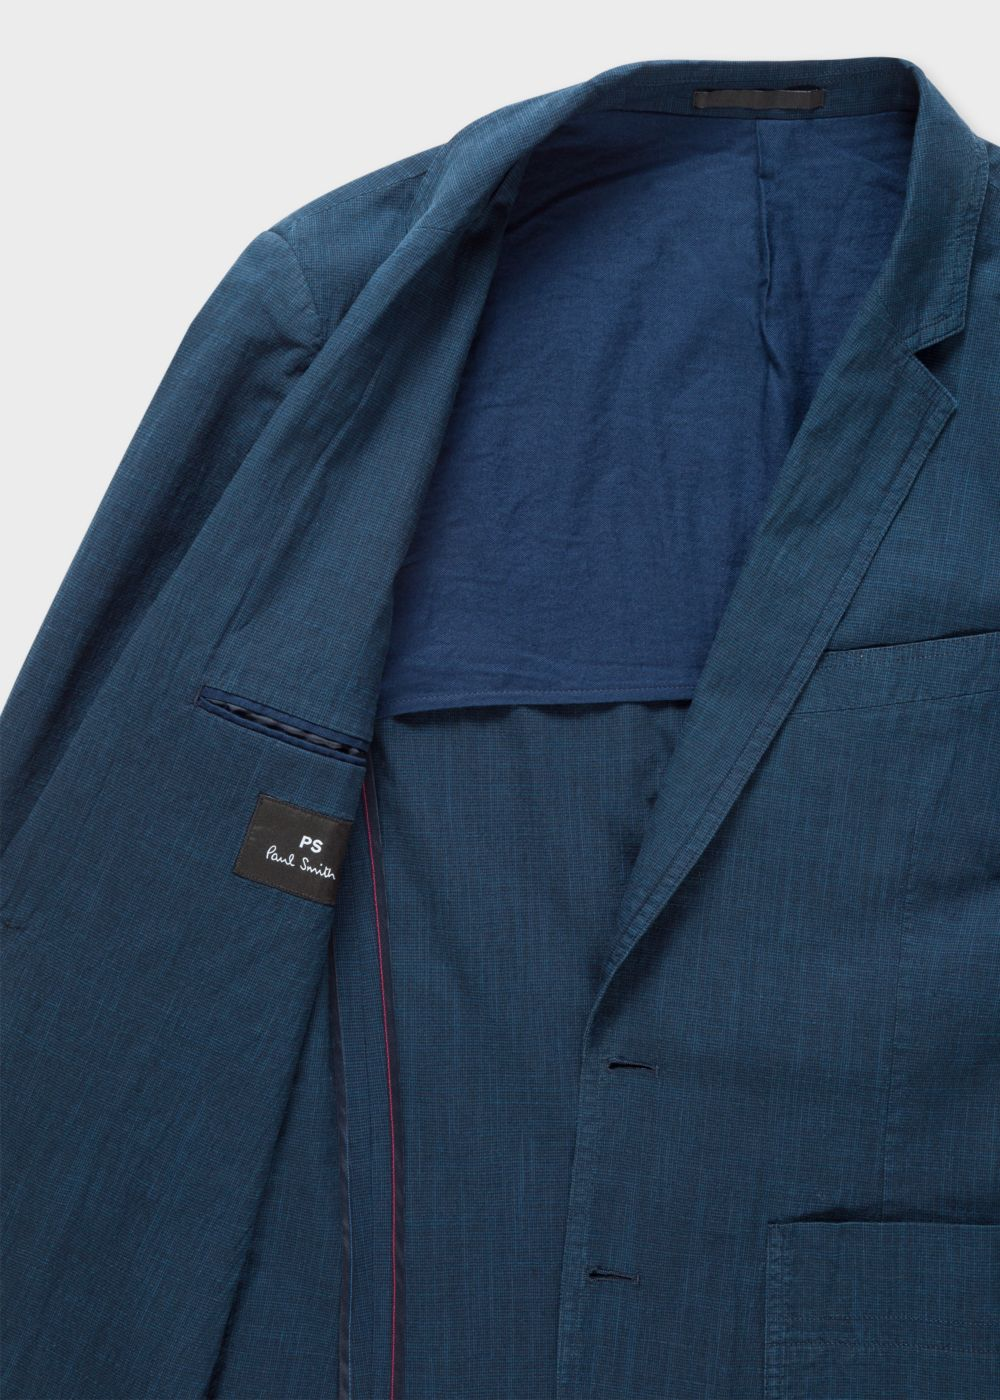 Men's Mid-Fit Navy Houndstooth Buggy-Lined Cotton-Linen Blazer